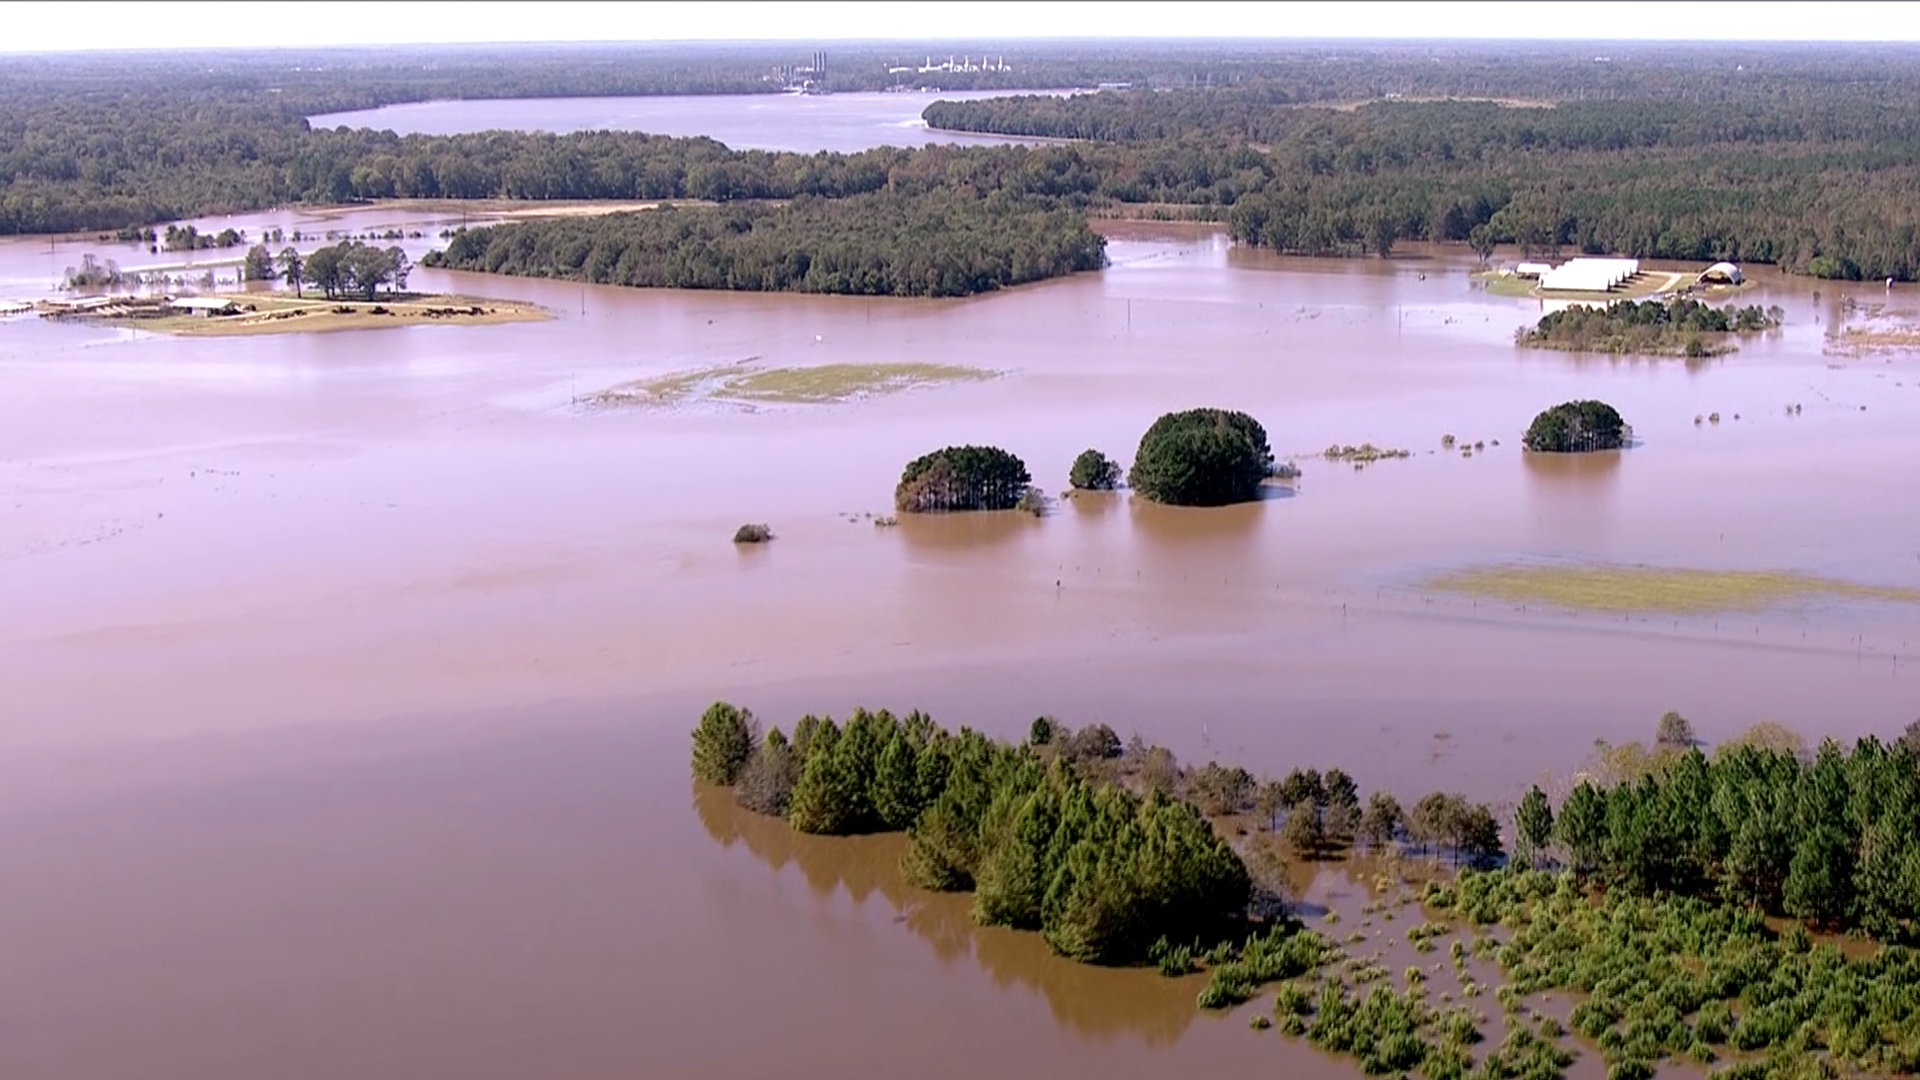 The Neuse River crested at a record near Goldsboro after Hurricane Matthew dumped more than a foot of rain in North Carolina.